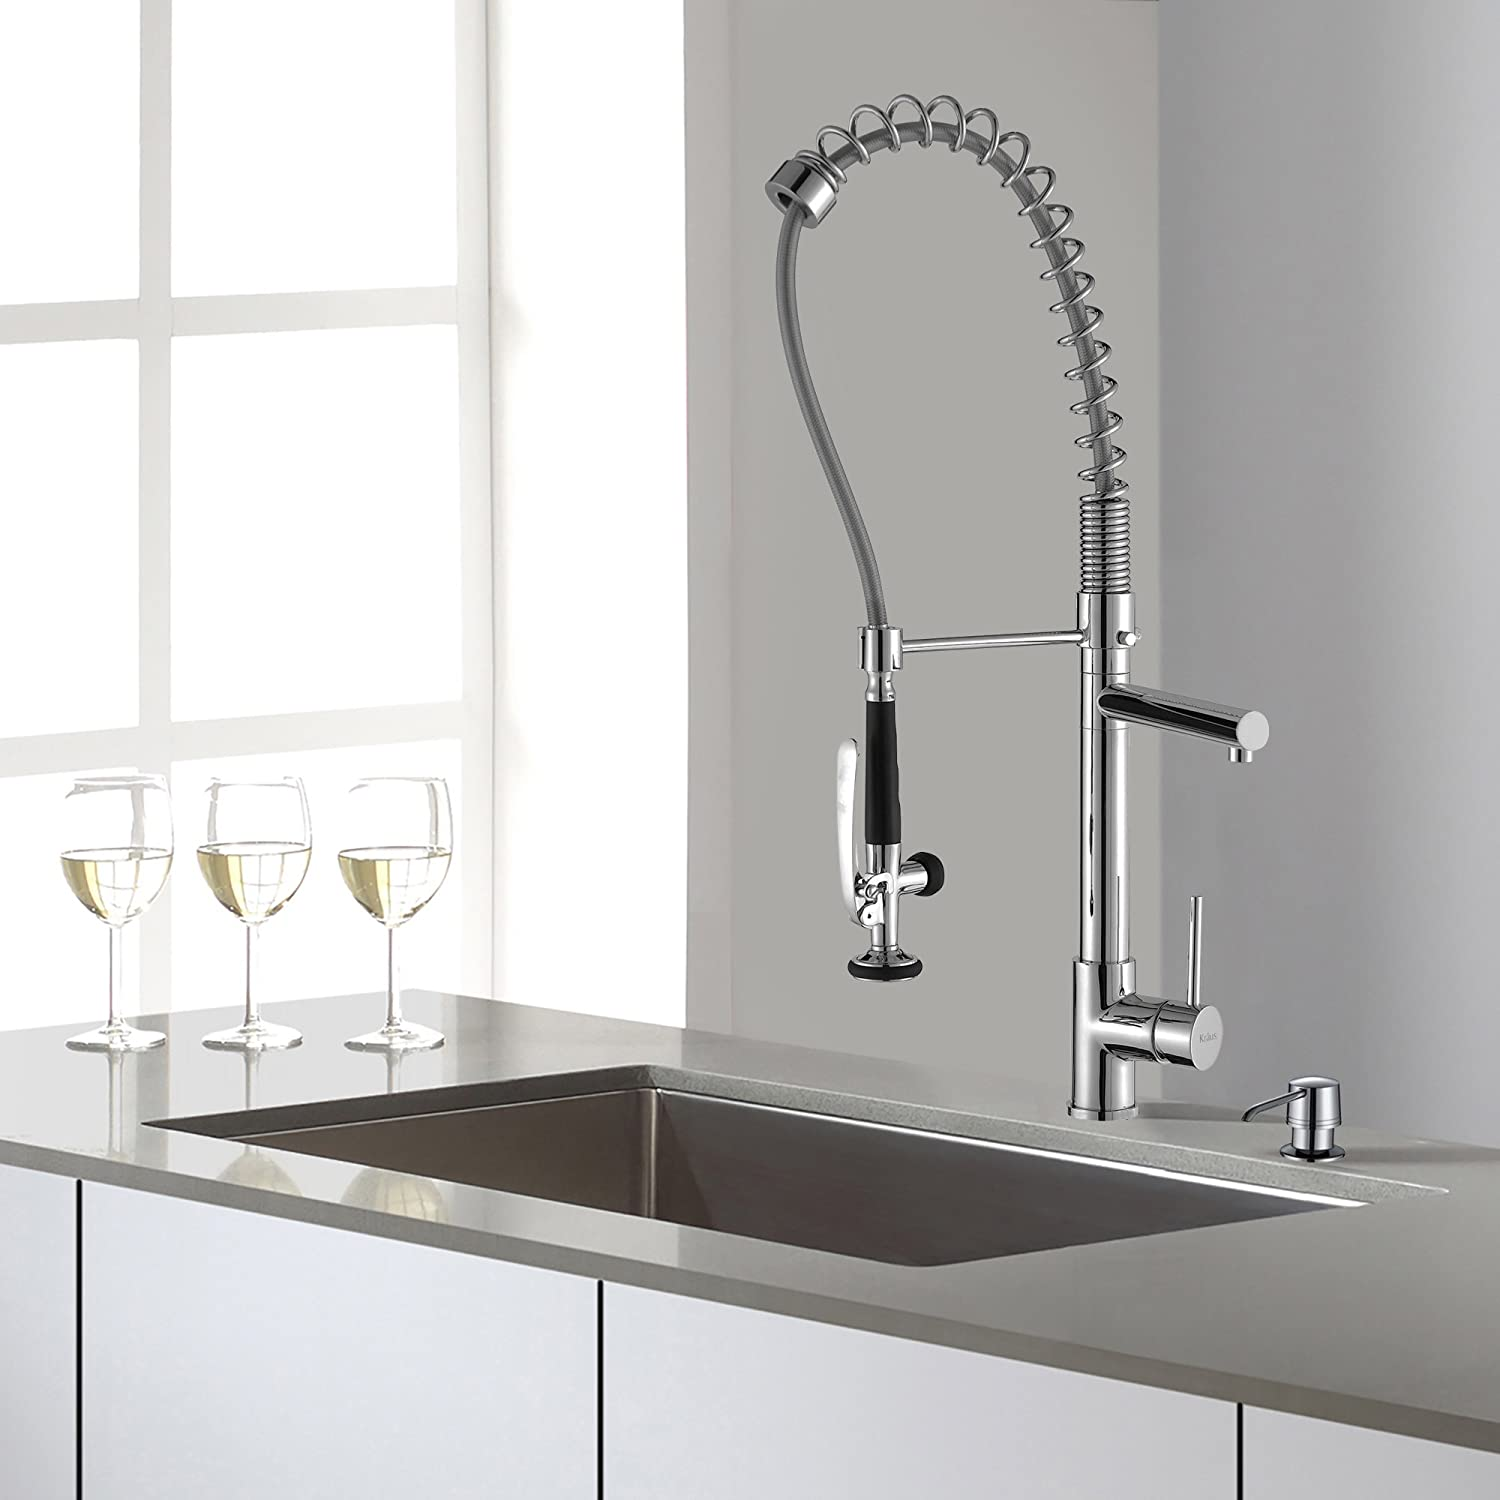 handle pull single extendn faucet down soap dst with faucets dispenser details leland sd tif kitchen